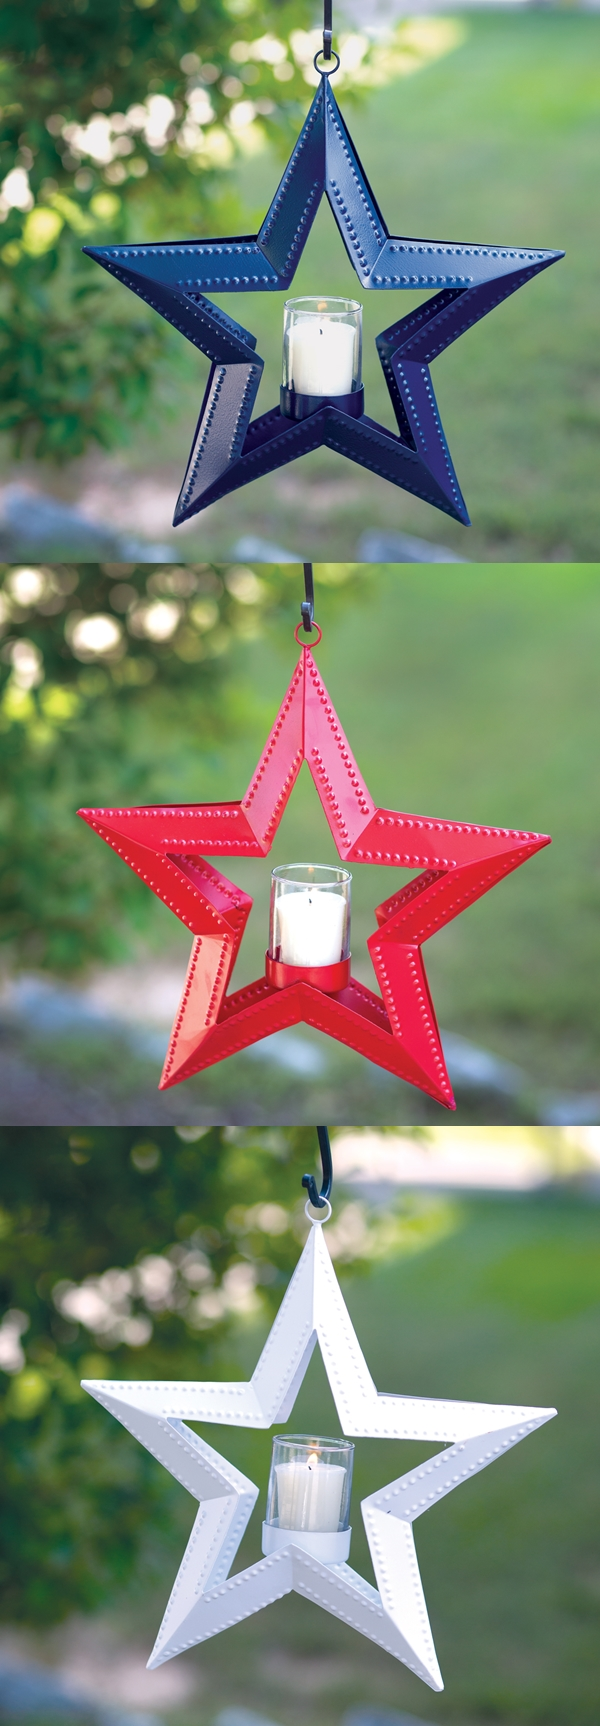 CTW Home Collection 5 Point Hanging Star Votive Holder (3 Colors)